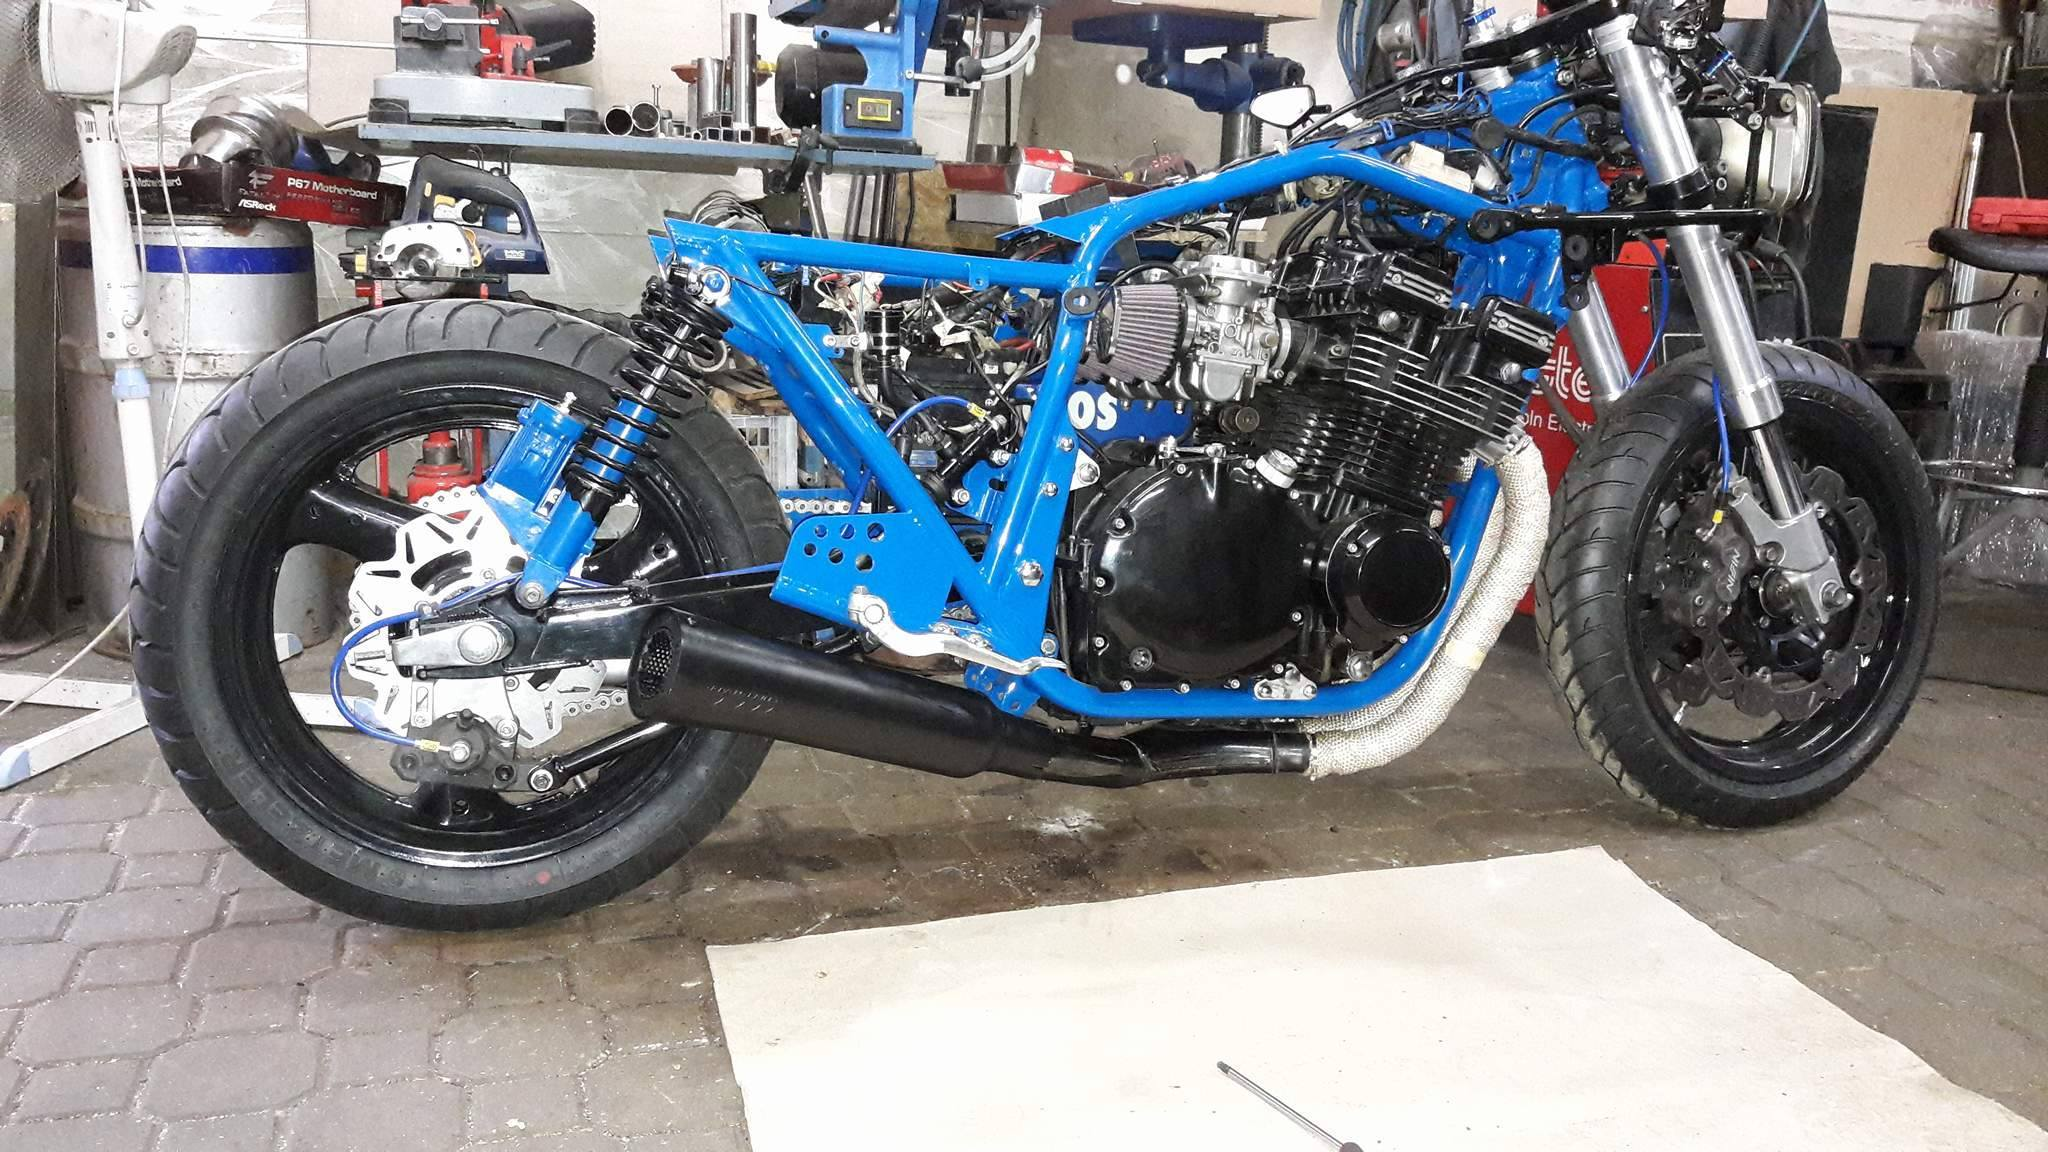 Suzuki GSX750S Katana build